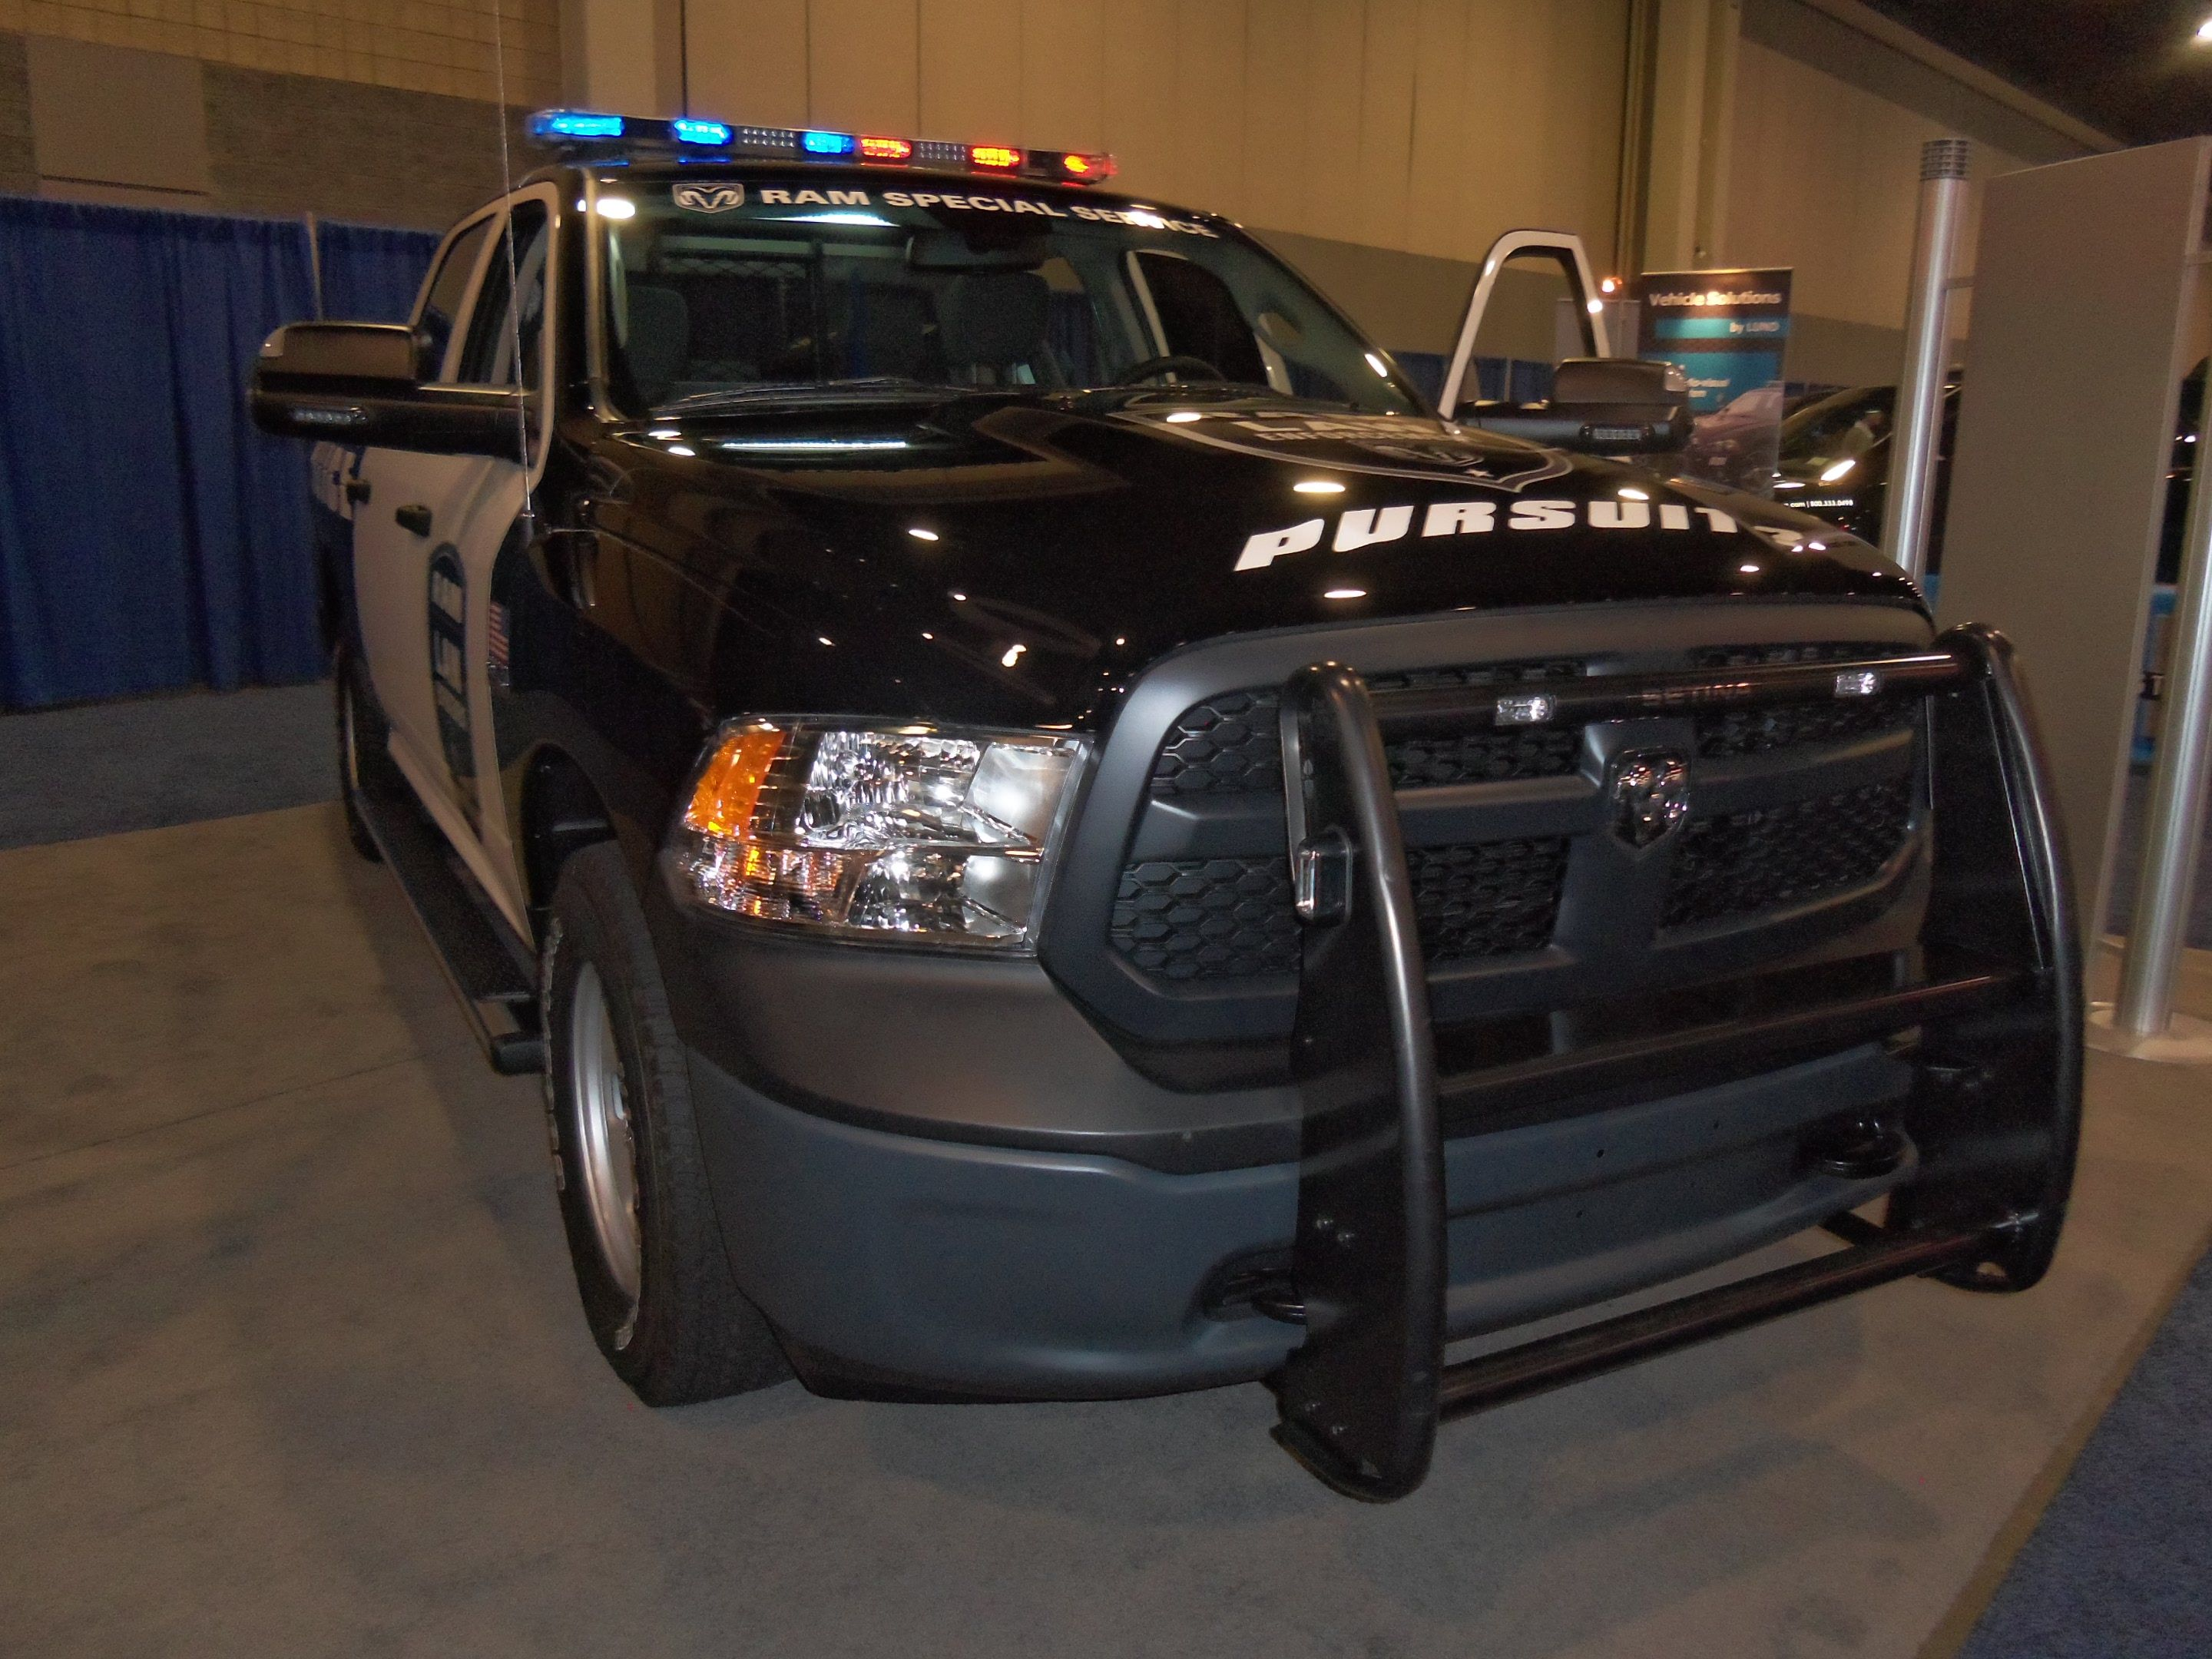 Pin On Dodge Durango Ram Truck Police Special Service